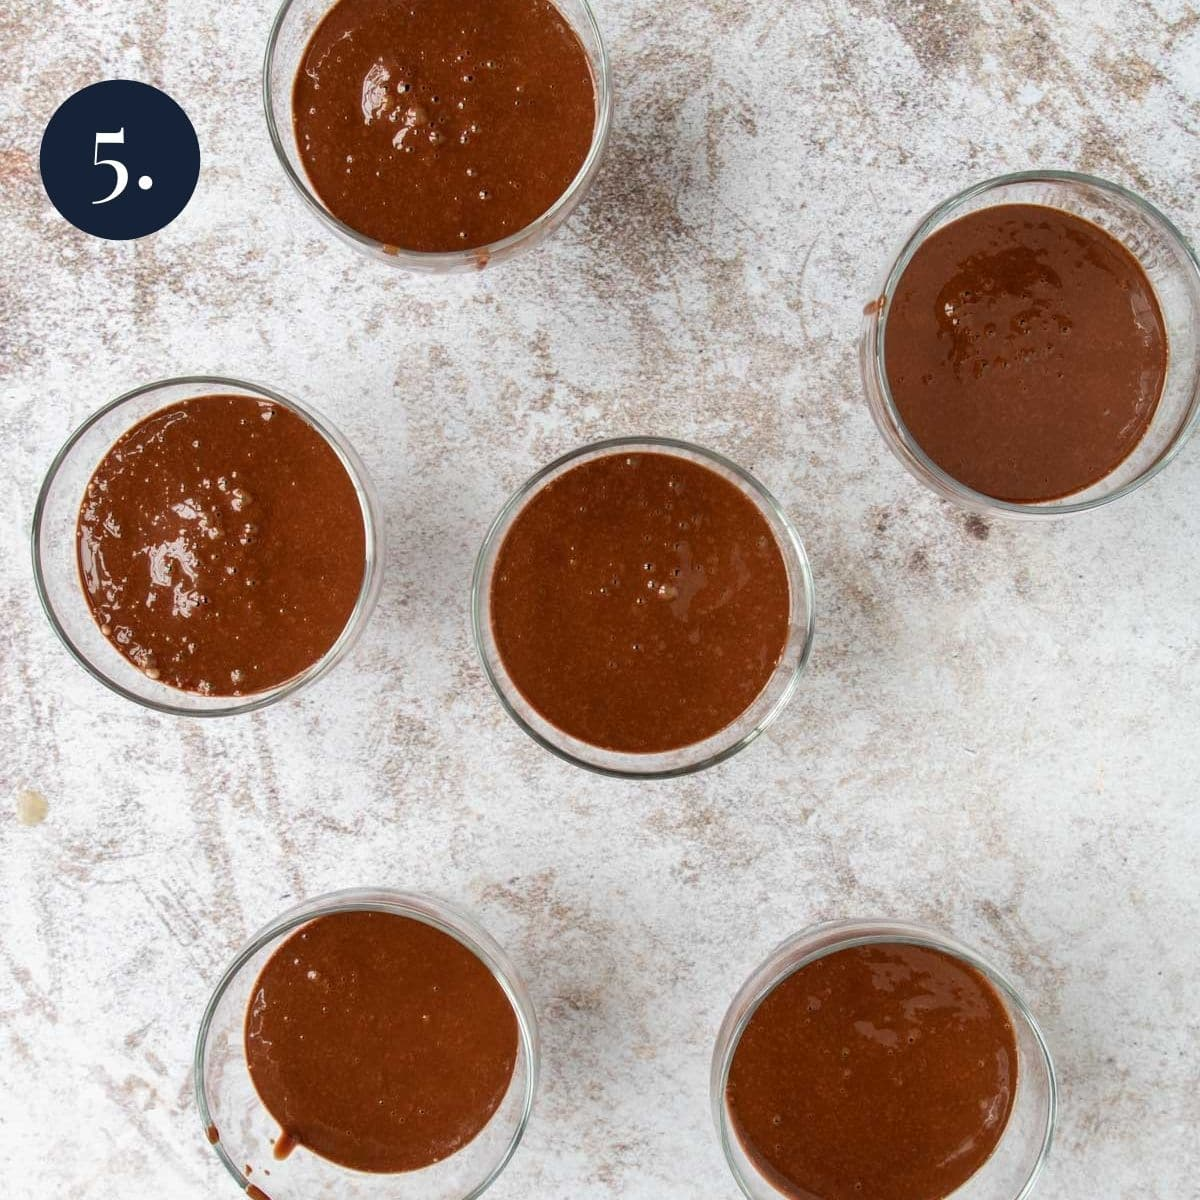 dessert cups filled with chocolate